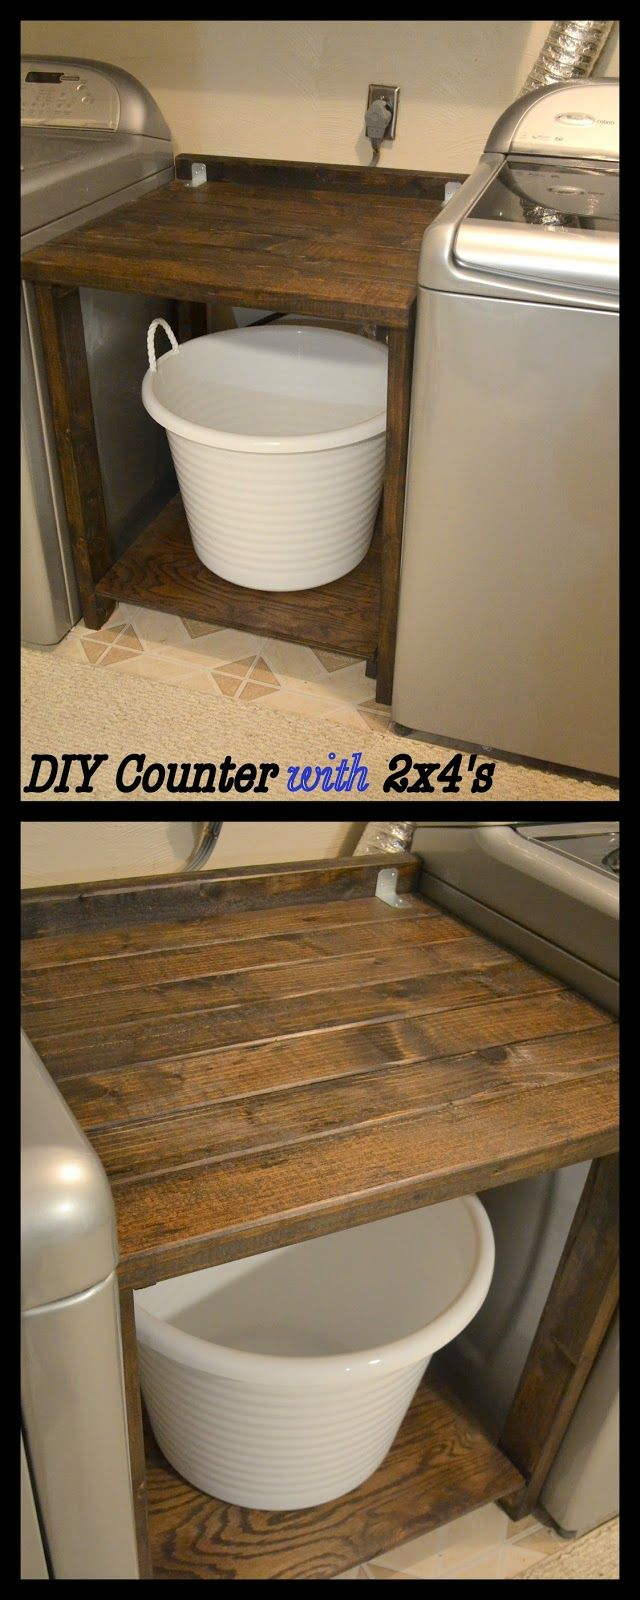 Basement Laundry Room Makeover Ideas, How to Finish a Basement Laundry Room,Spruce Up Basement Laundry, #Basement #Makeover